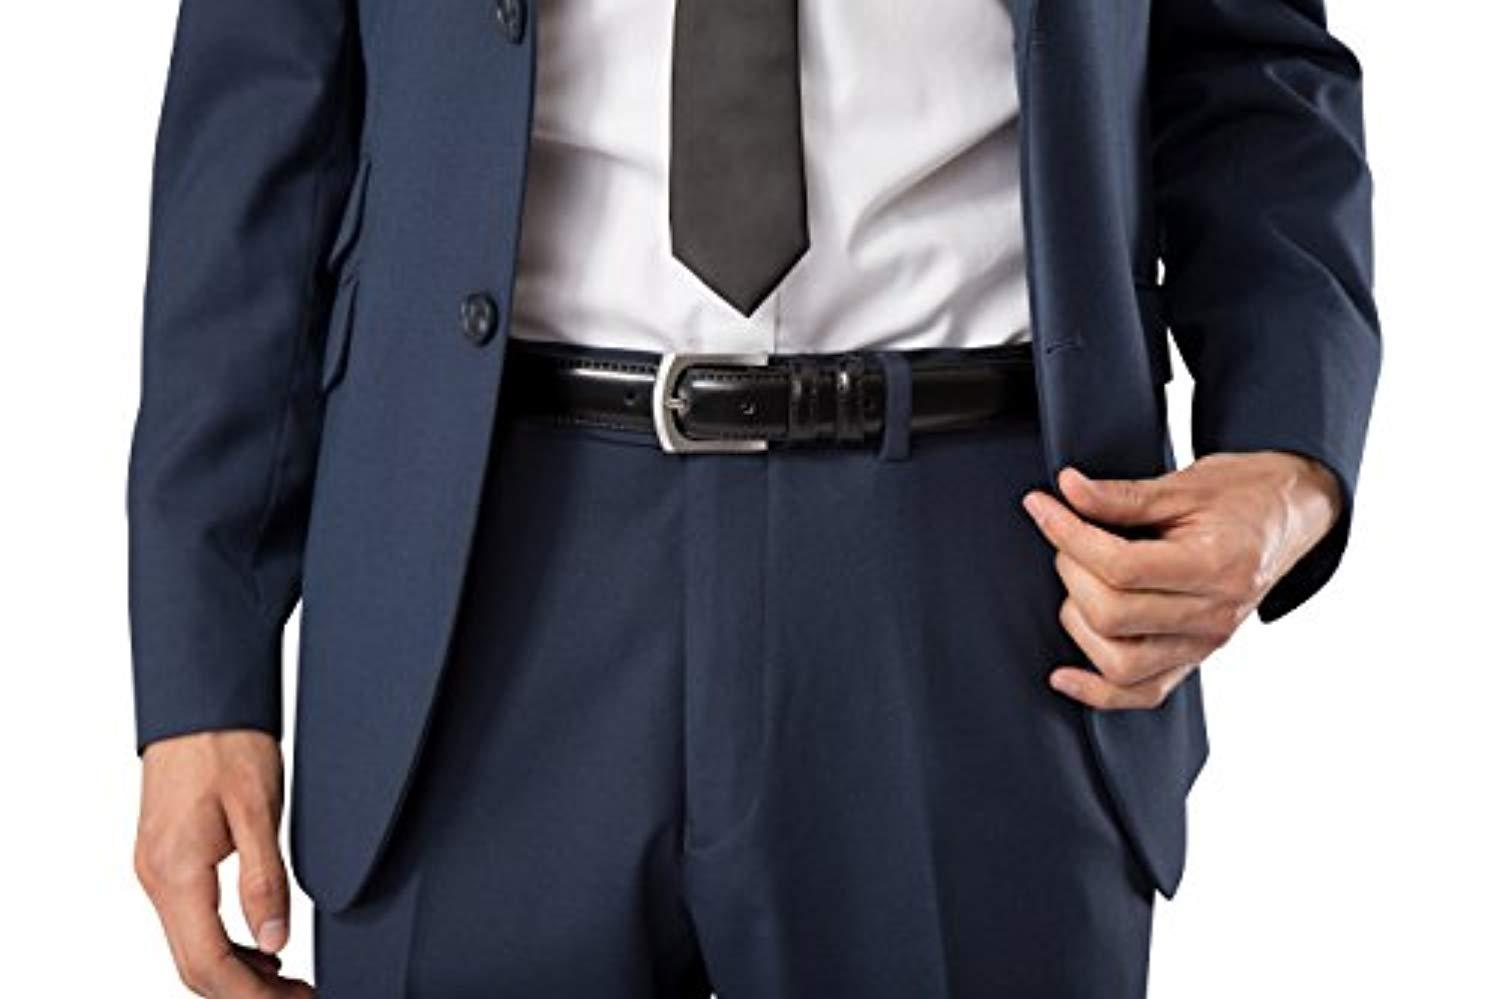 Mens Genuine Leather Dress Belt Classic Stitched Design 30mm ALL LEATHER Regular Big and Tall Sizes